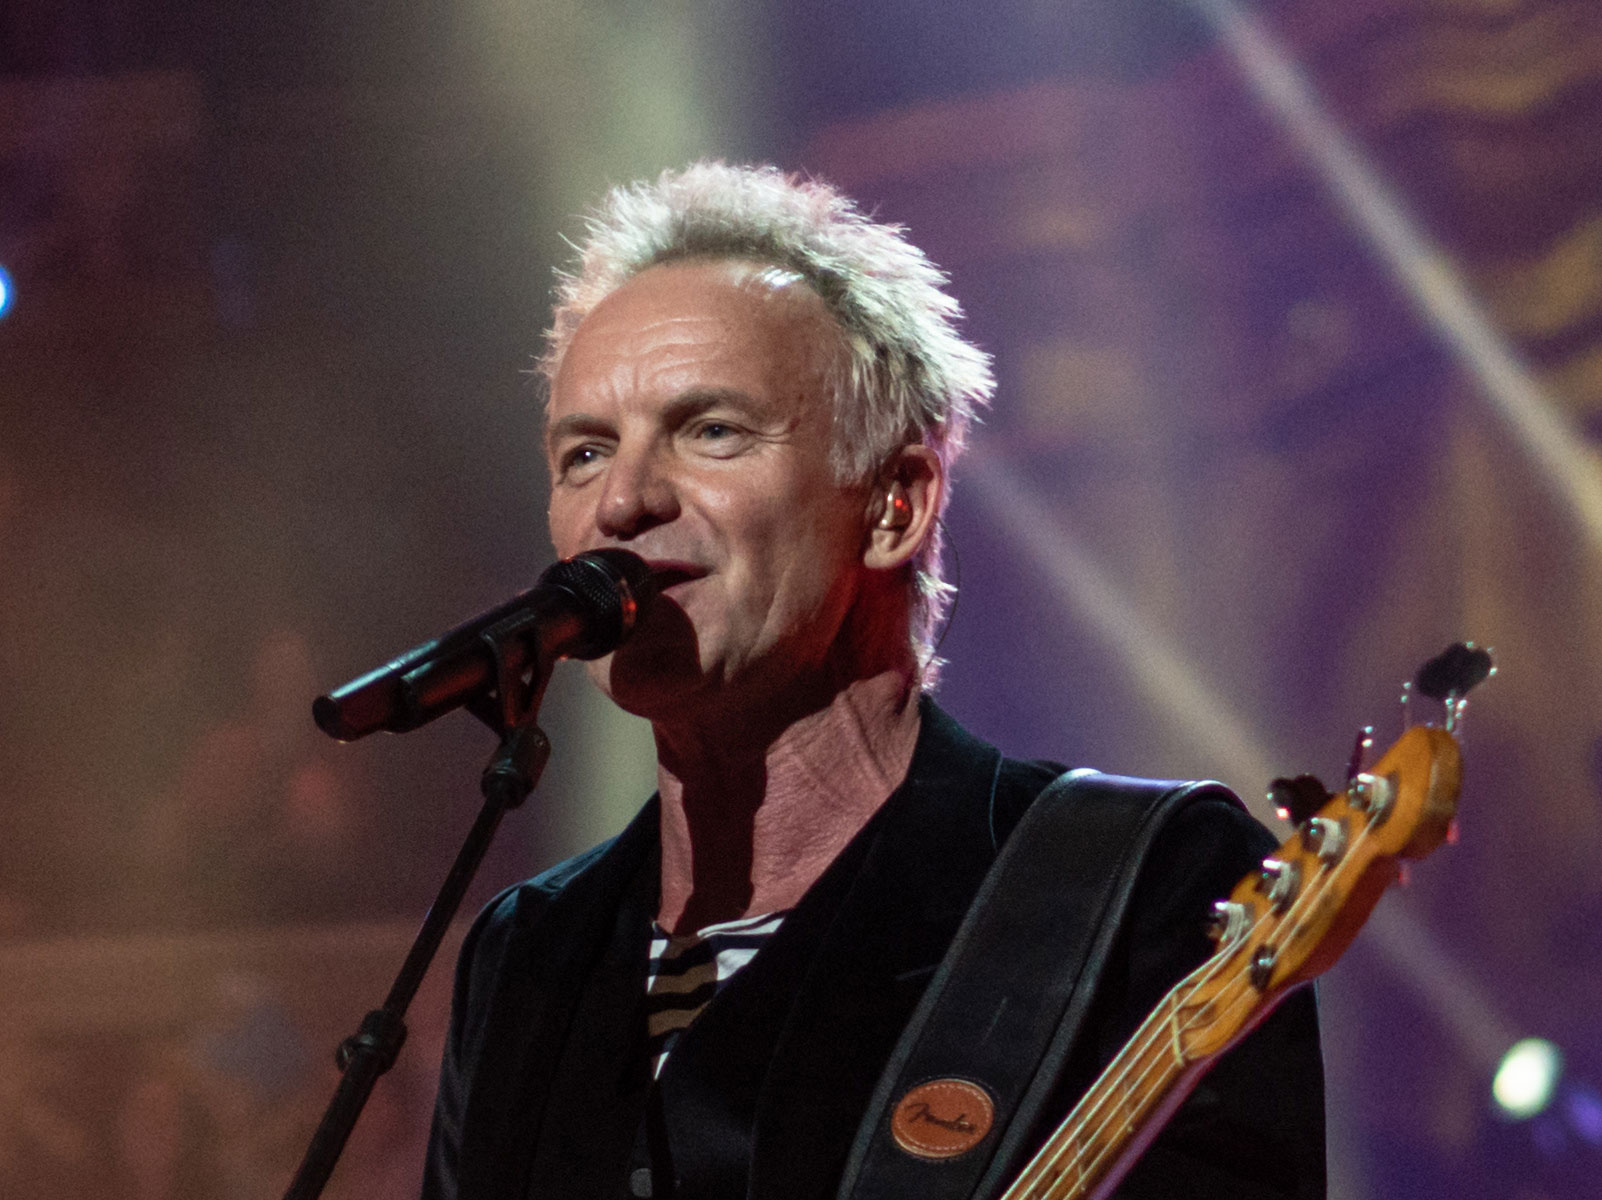 Photo of Sting playing guitar.